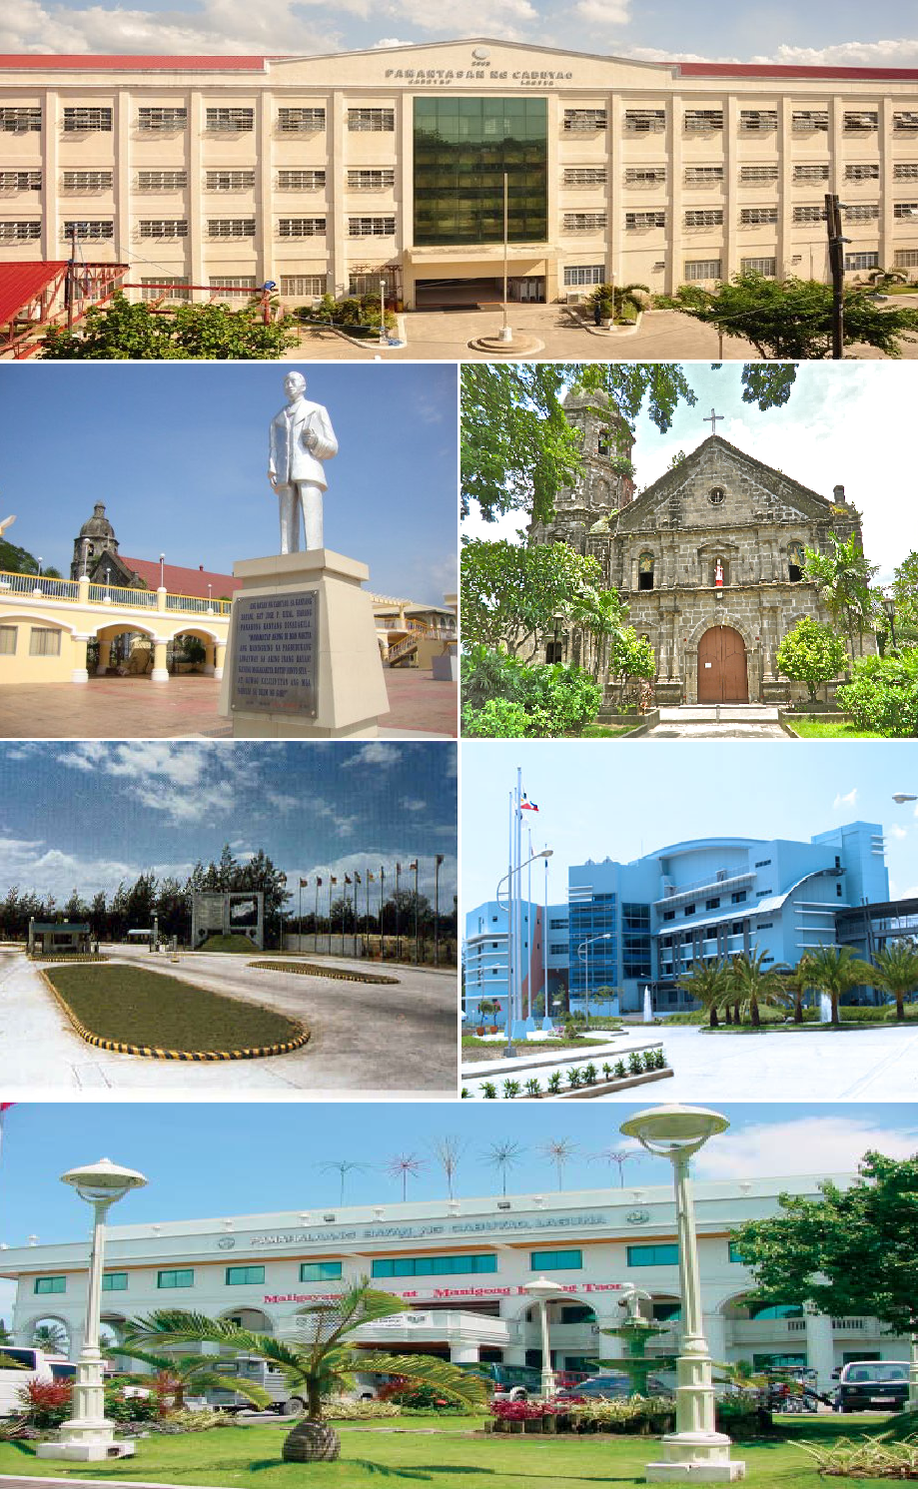 Cabuyao - The complete information and online sale with free